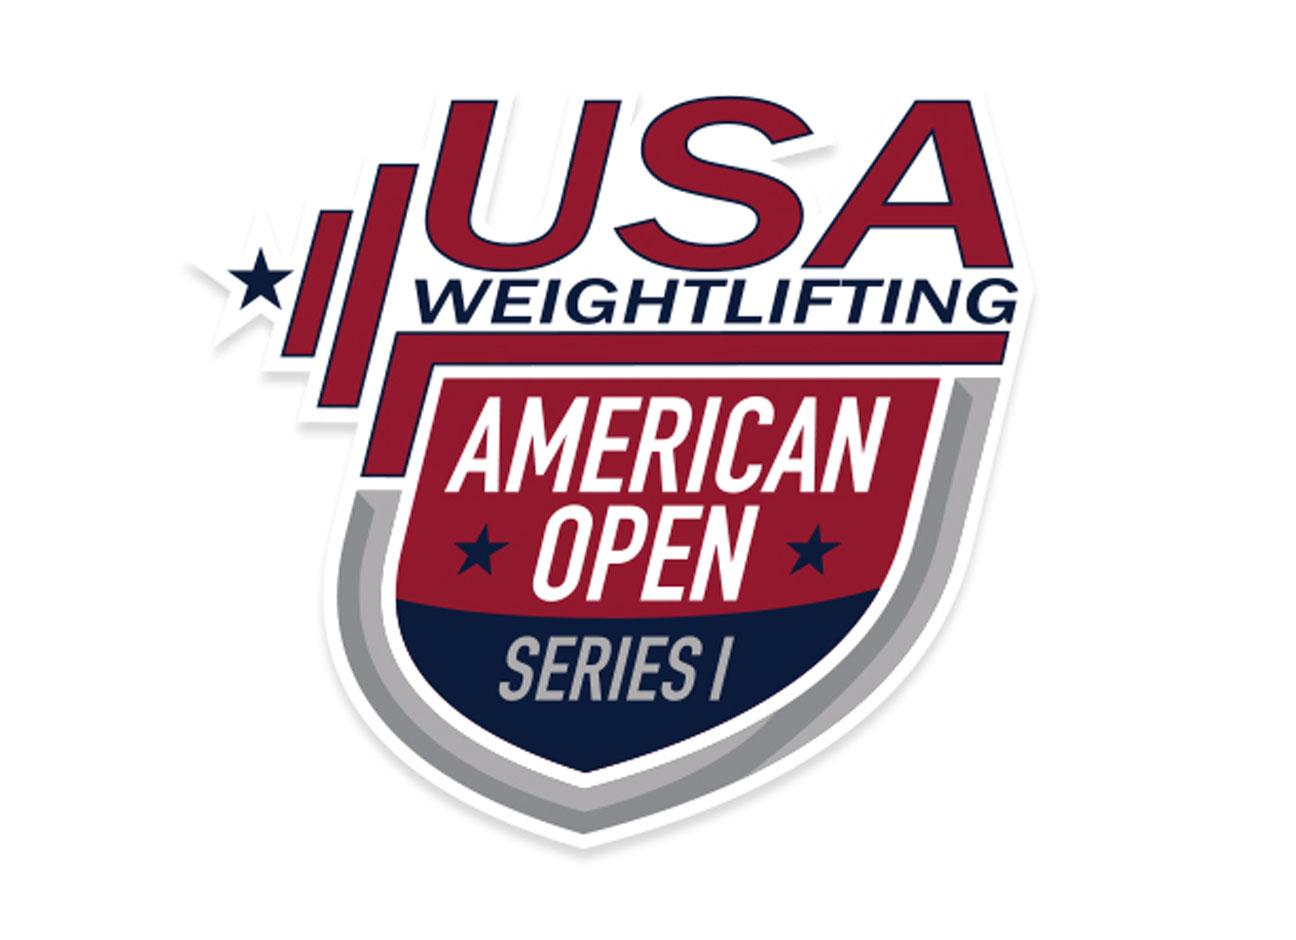 The American Open Series 1 was held at the Arnold Sports Festival for USAW members